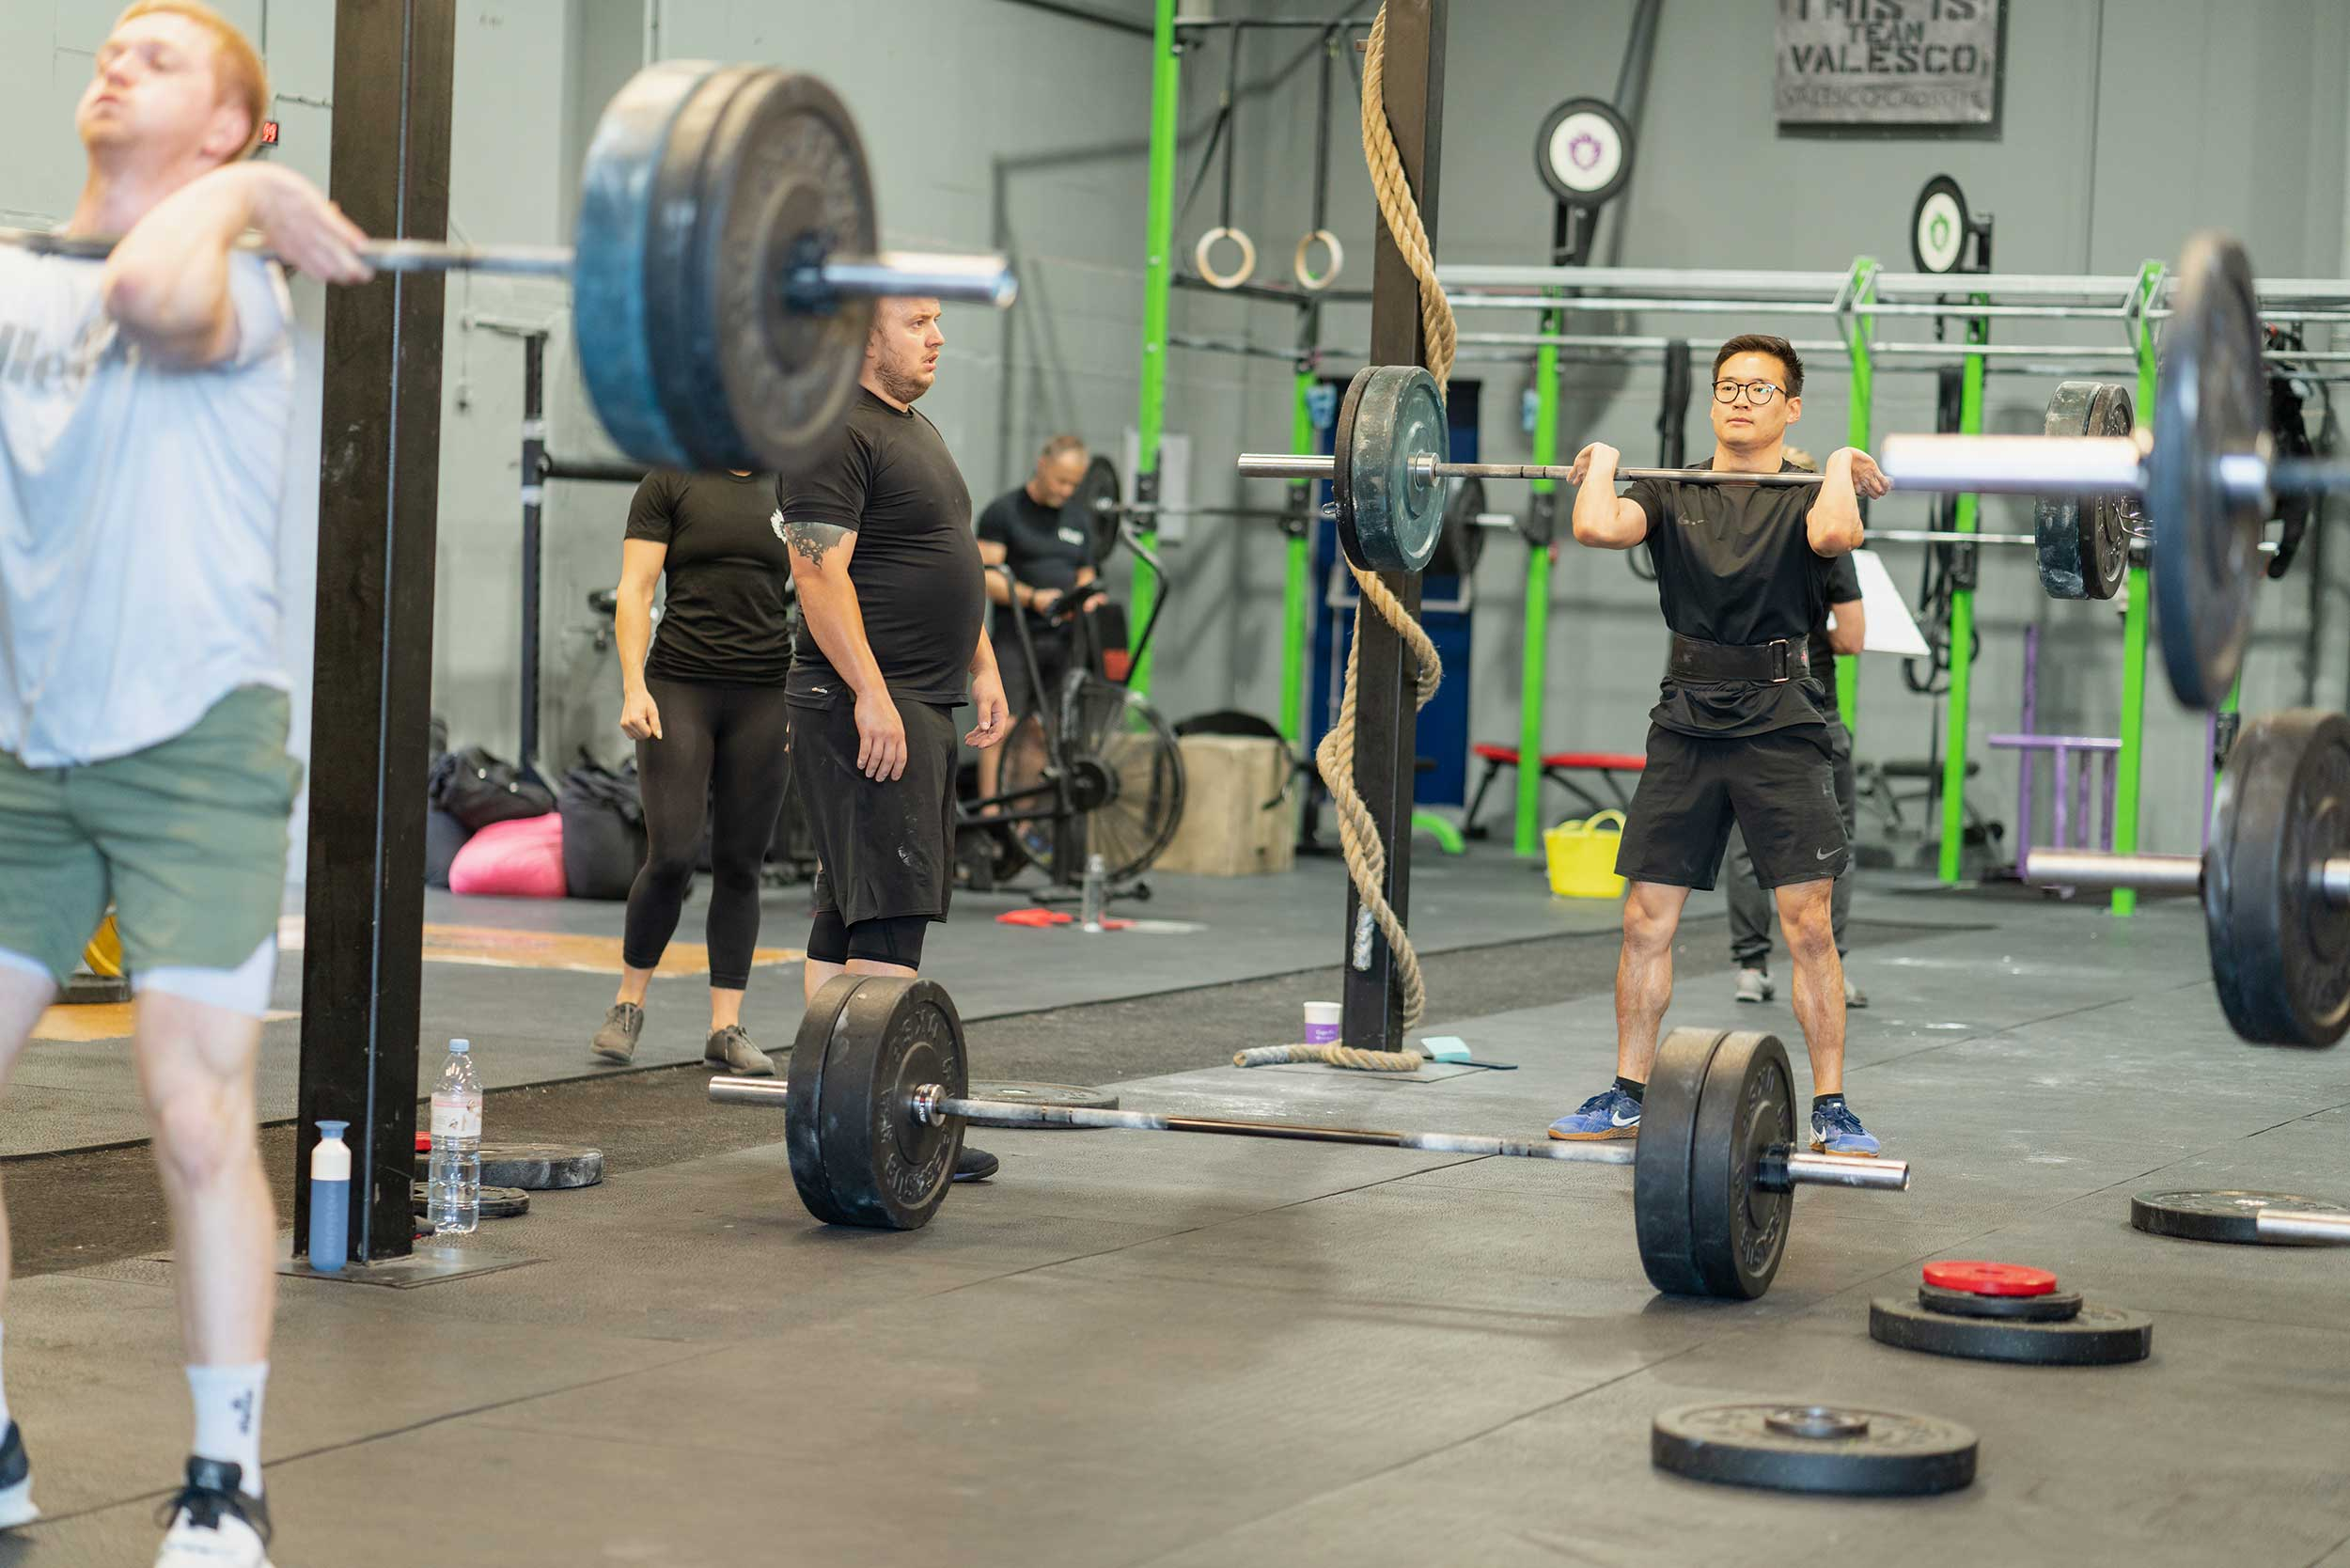 Weightlifting-Valesco-CrossFit